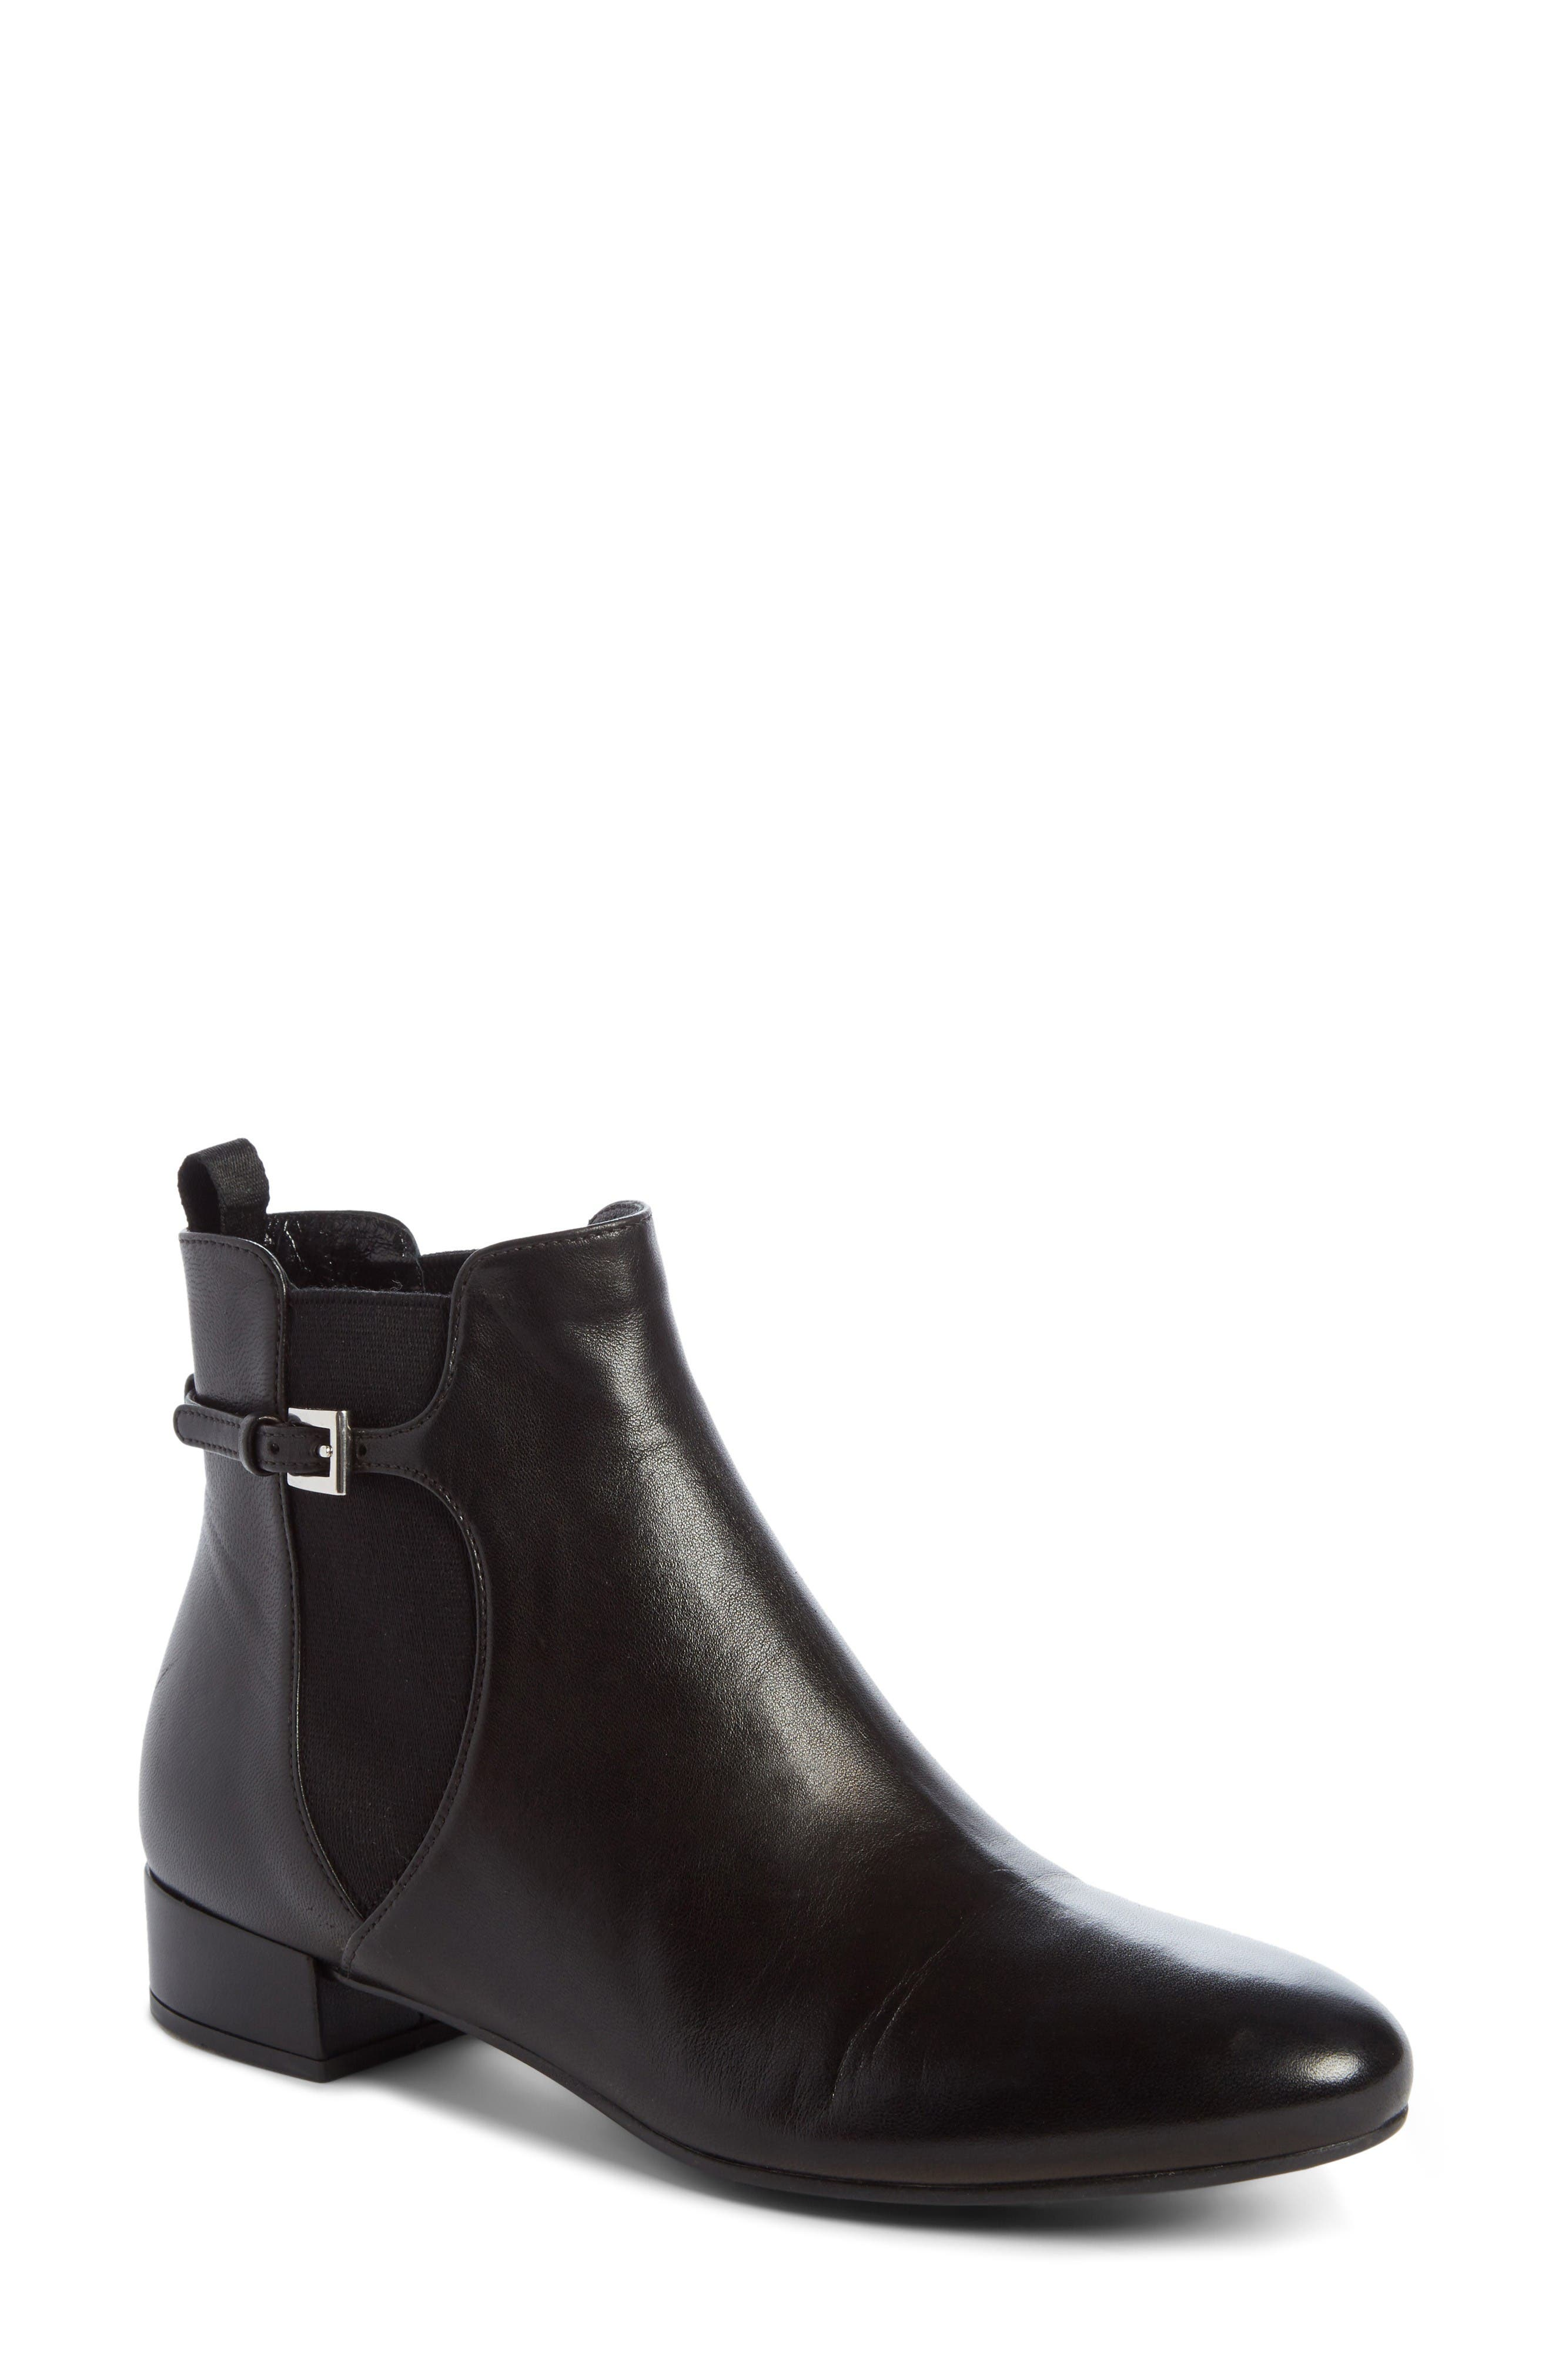 Prada Buckle Chelsea Boot (Women)